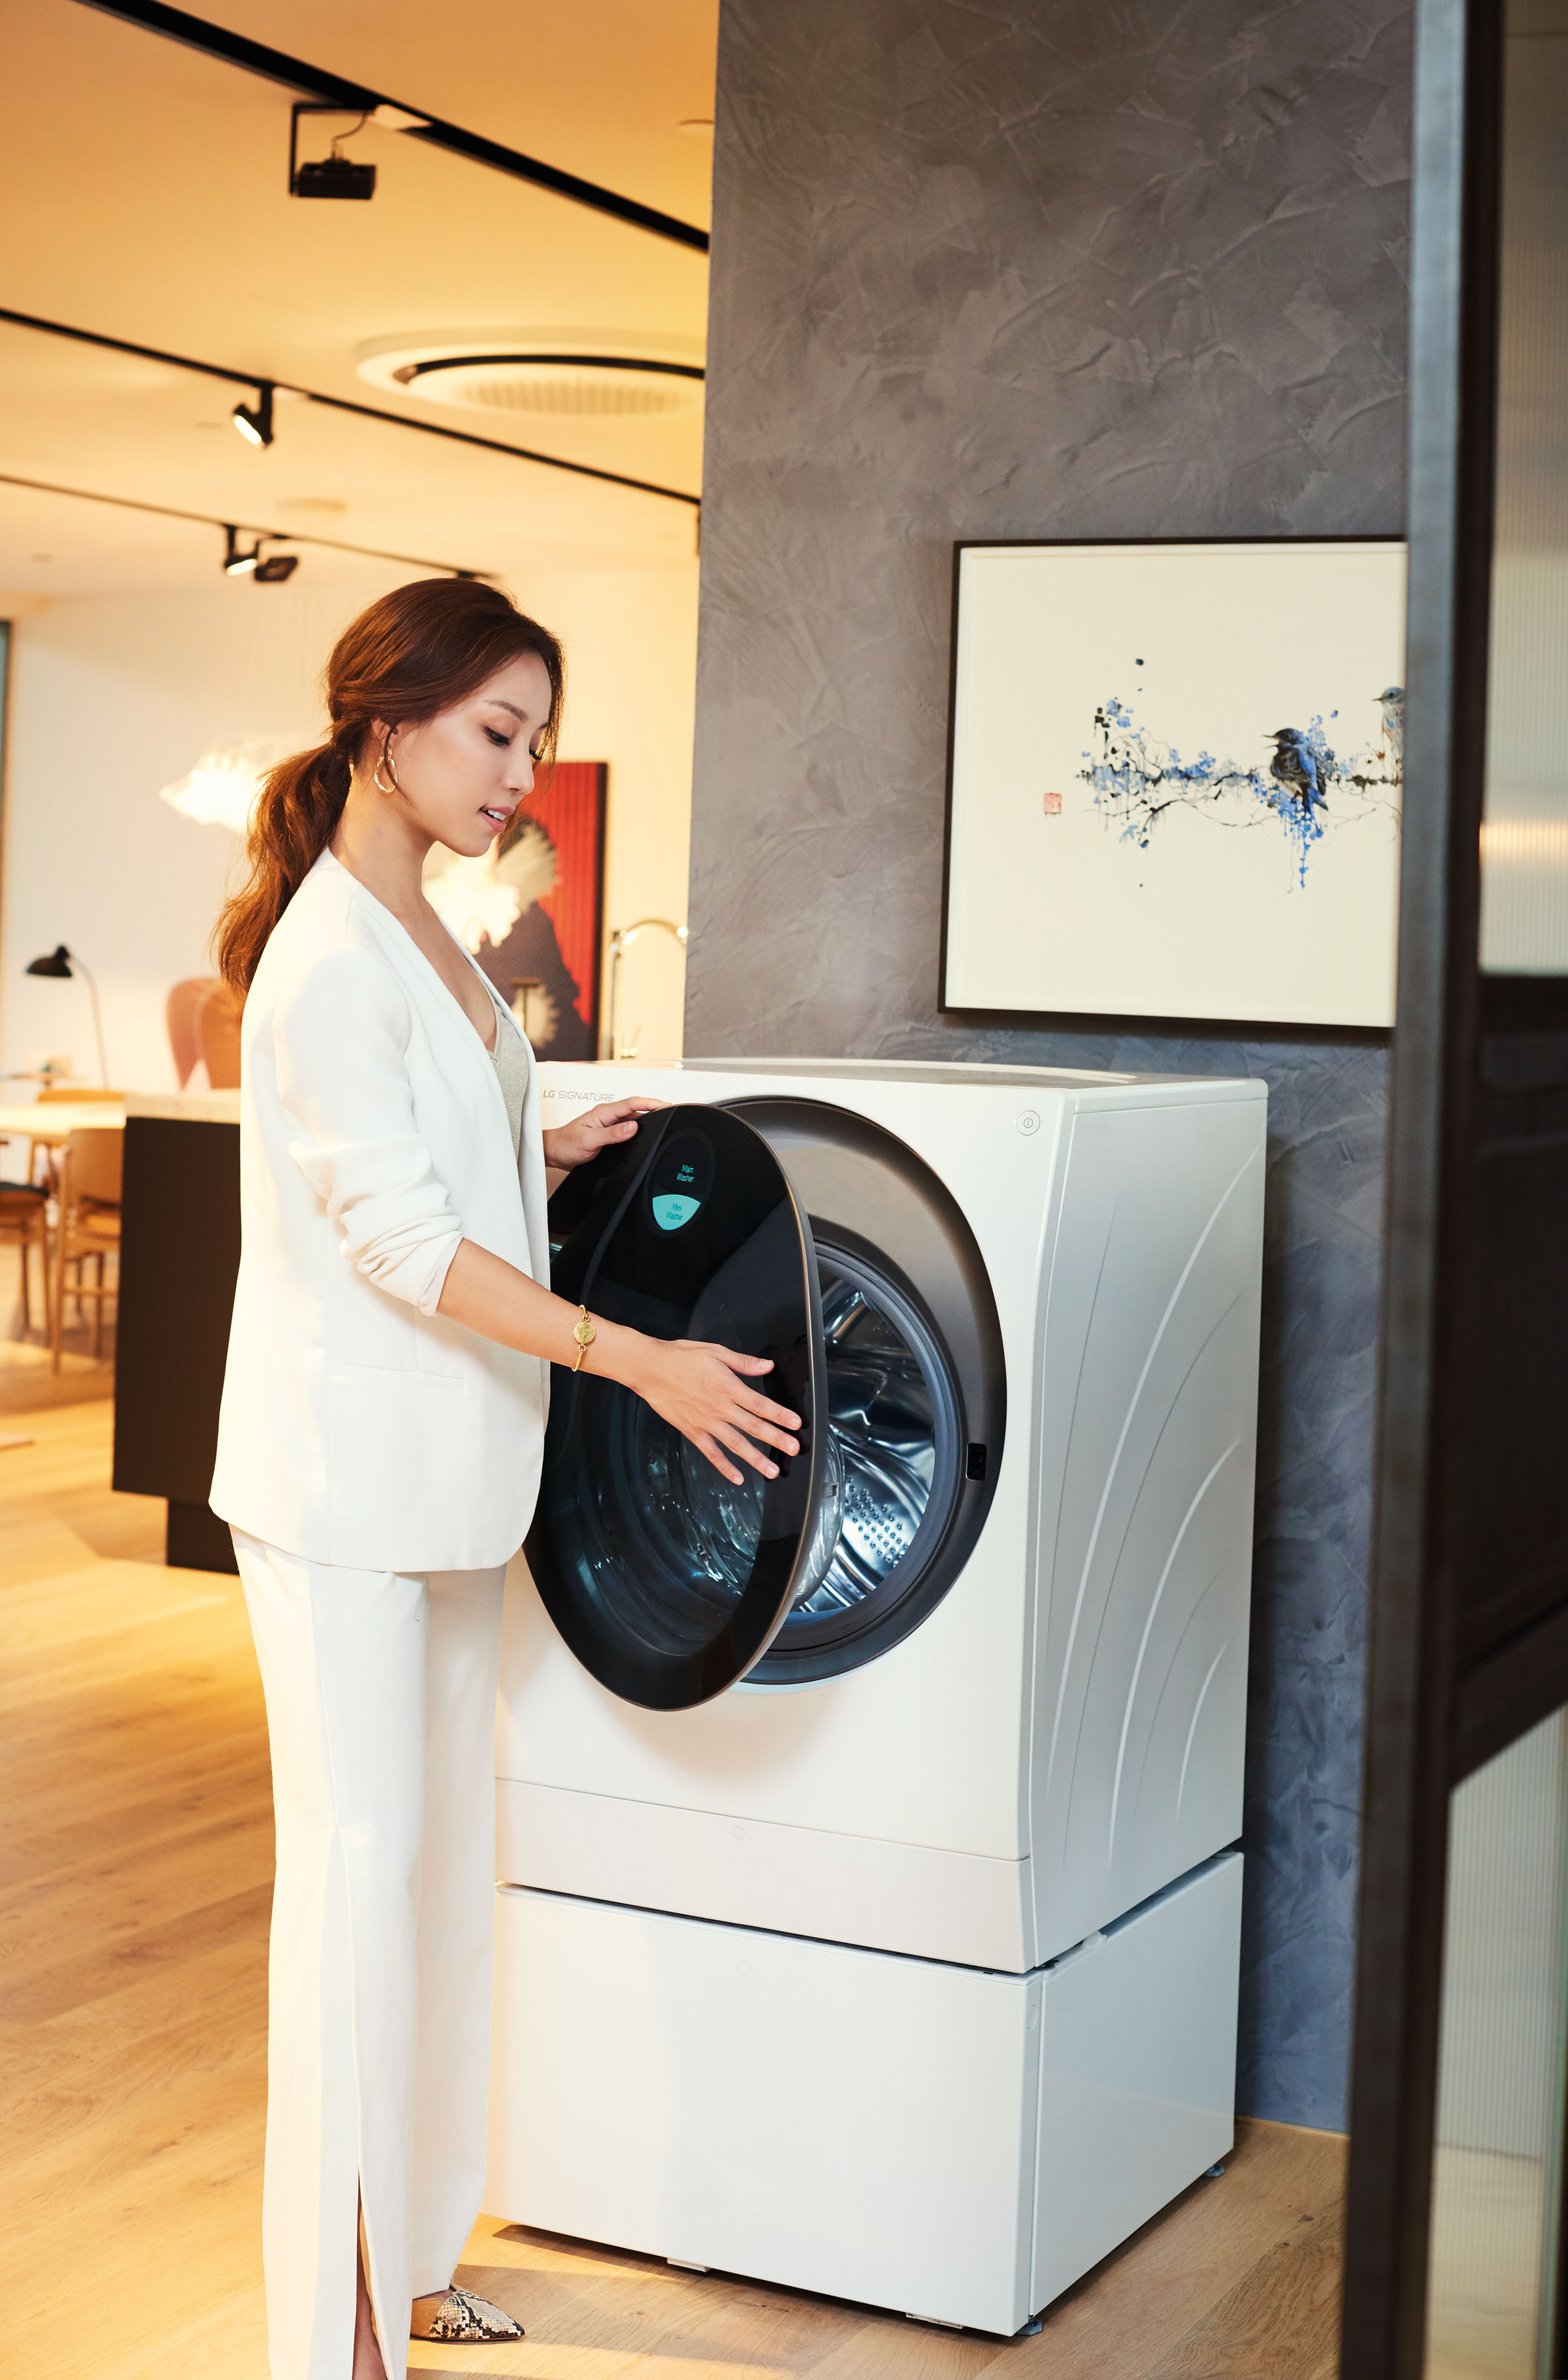 VIDEO: LG SIGNATURE Special — Beatrice Tan On The Fabric Of Work And Unwind